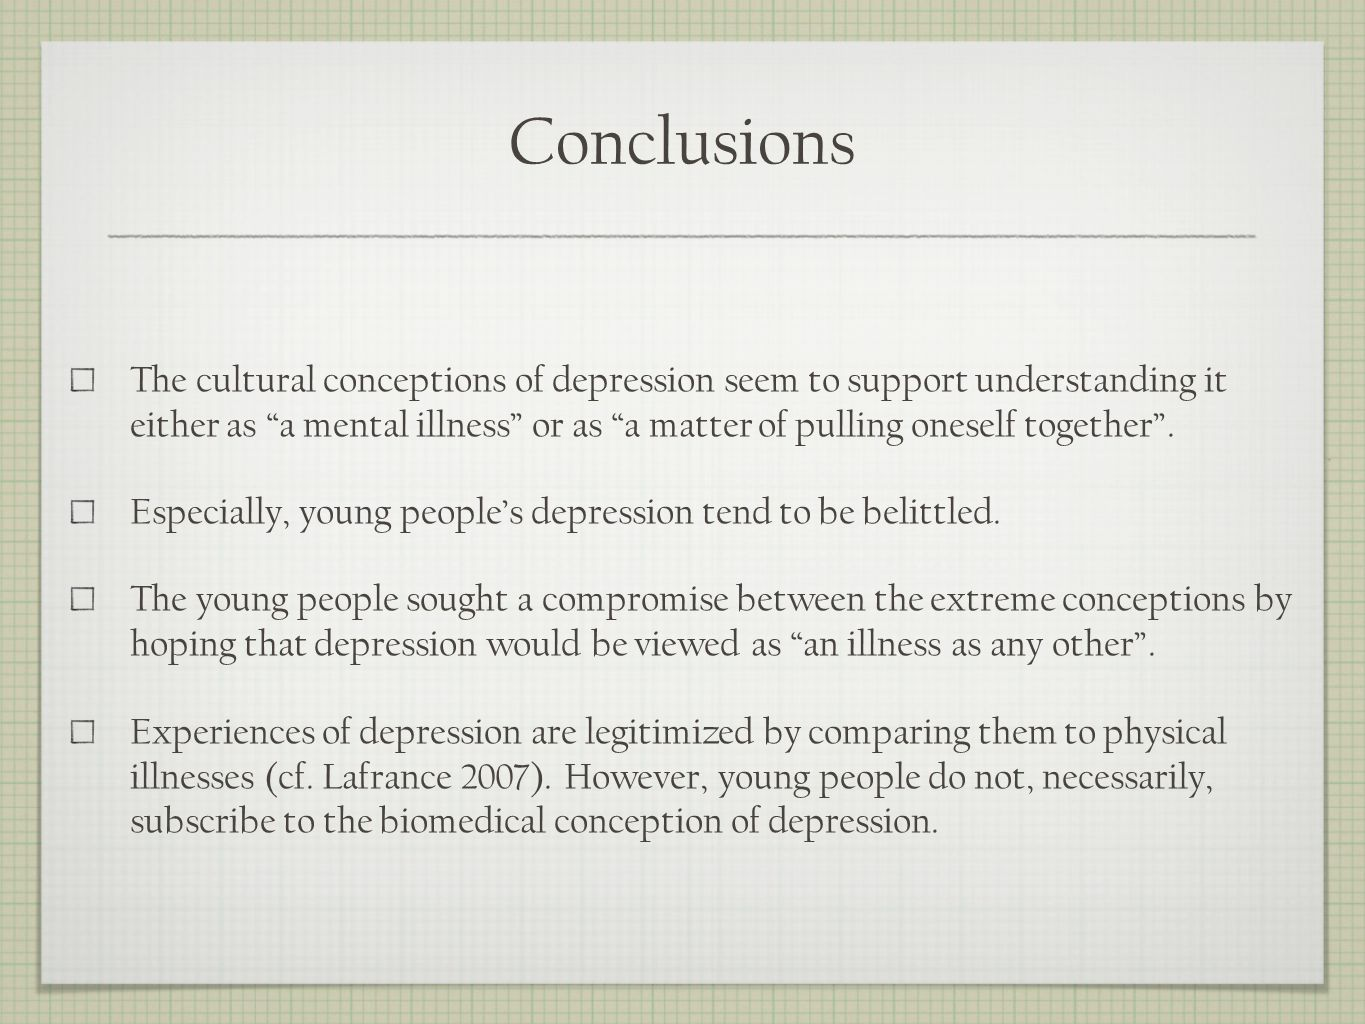 Conclusions The cultural conceptions of depression seem to support understanding it either as a mental illness or as a matter of pulling oneself together.